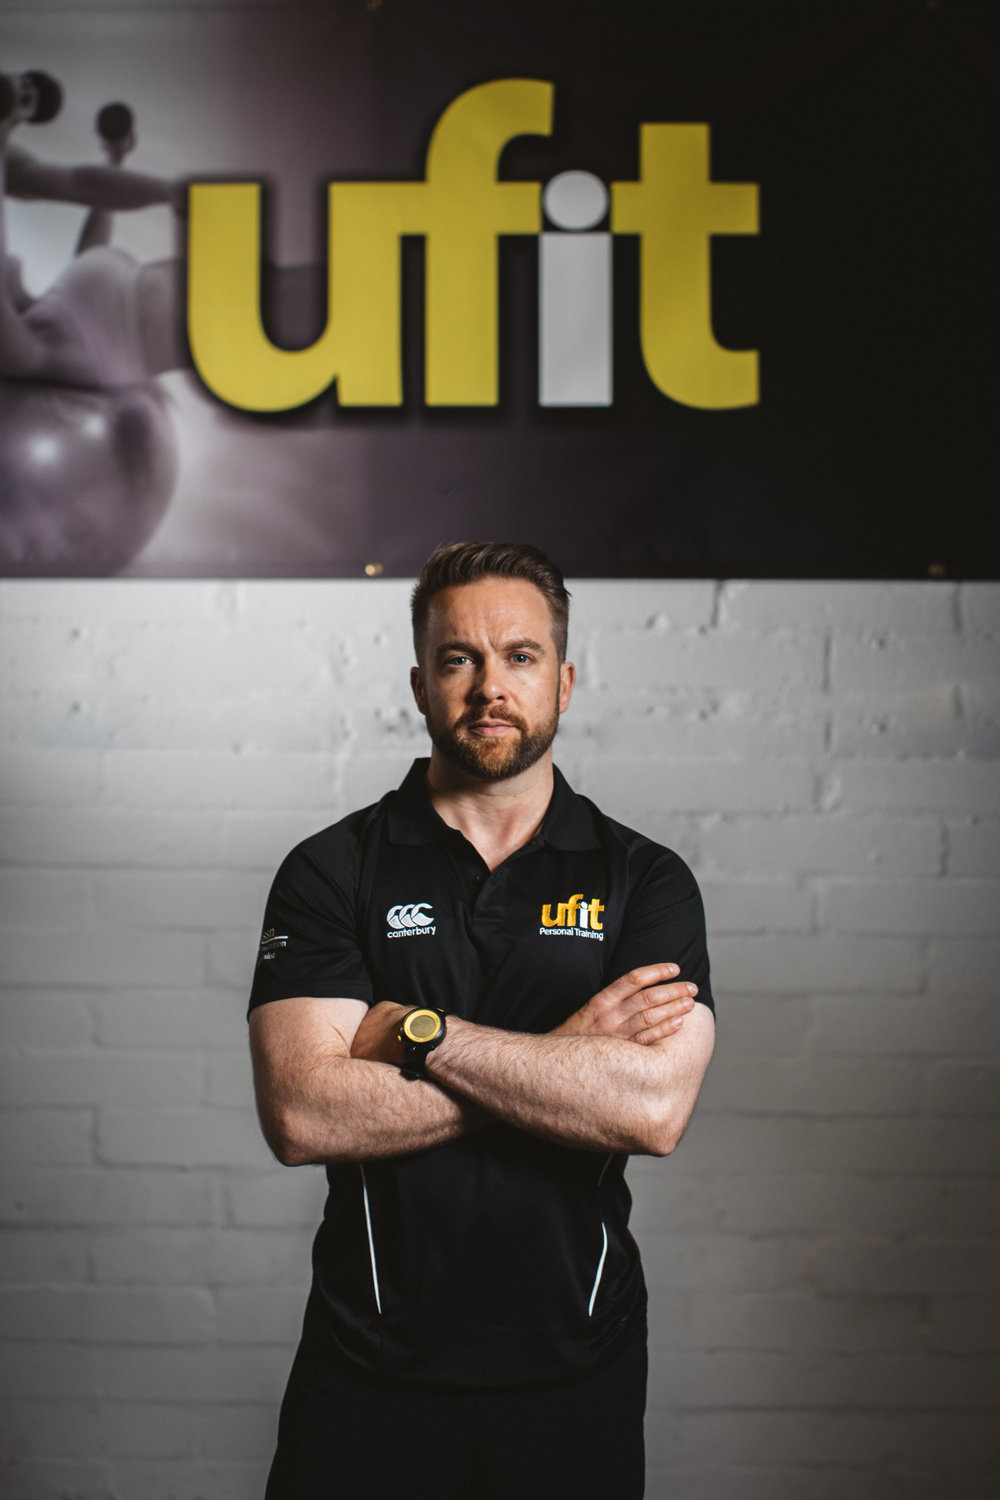 Tony Deeney - I needed to strengthen my brand identity in order to have a more uniform message, both with imagery in the gym and across all online platforms. David's keen eye for a great photo and also his wealth of marketing knowledge allowed me to do this. I would highly recommend him to any business owner who needs to sharpen their image.